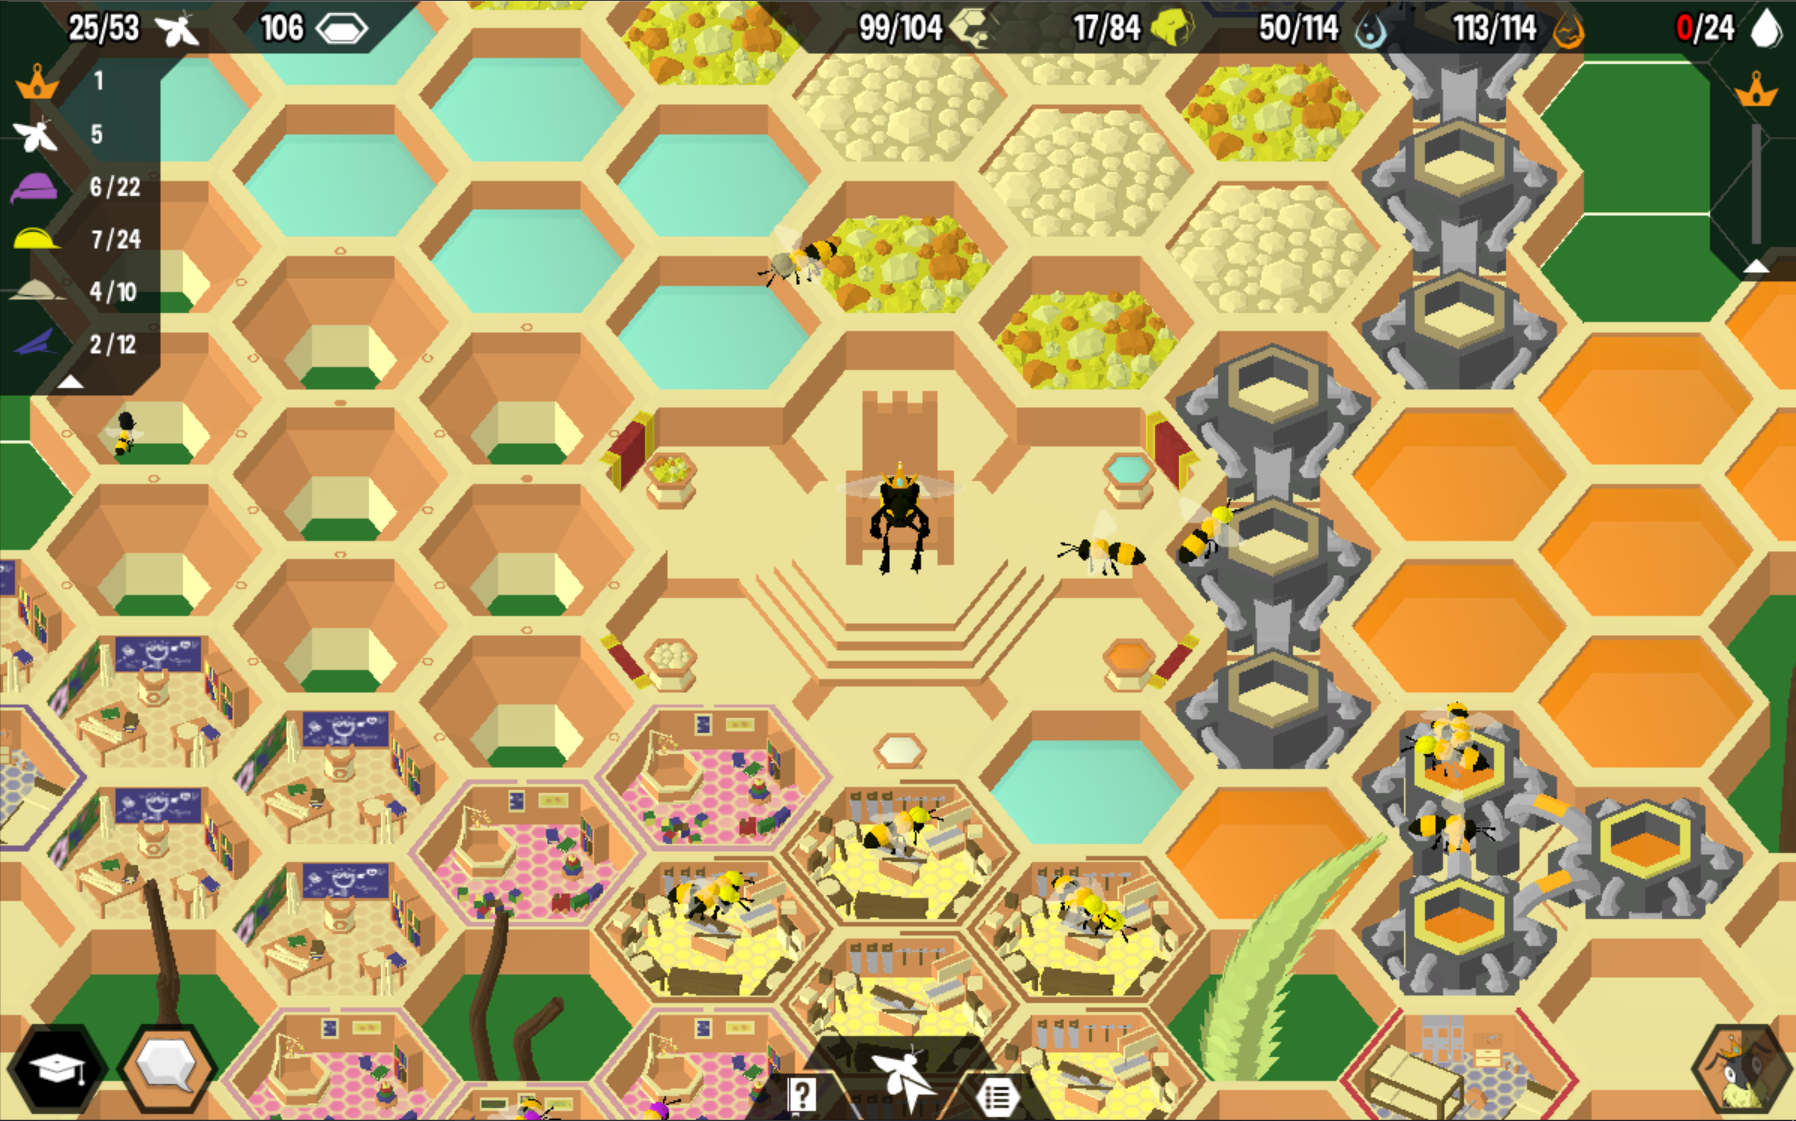 A screenshot of the game Hive Time. A queen bee sits on her thrown with multiple comb rooms surrounding her serving multiple purposes.